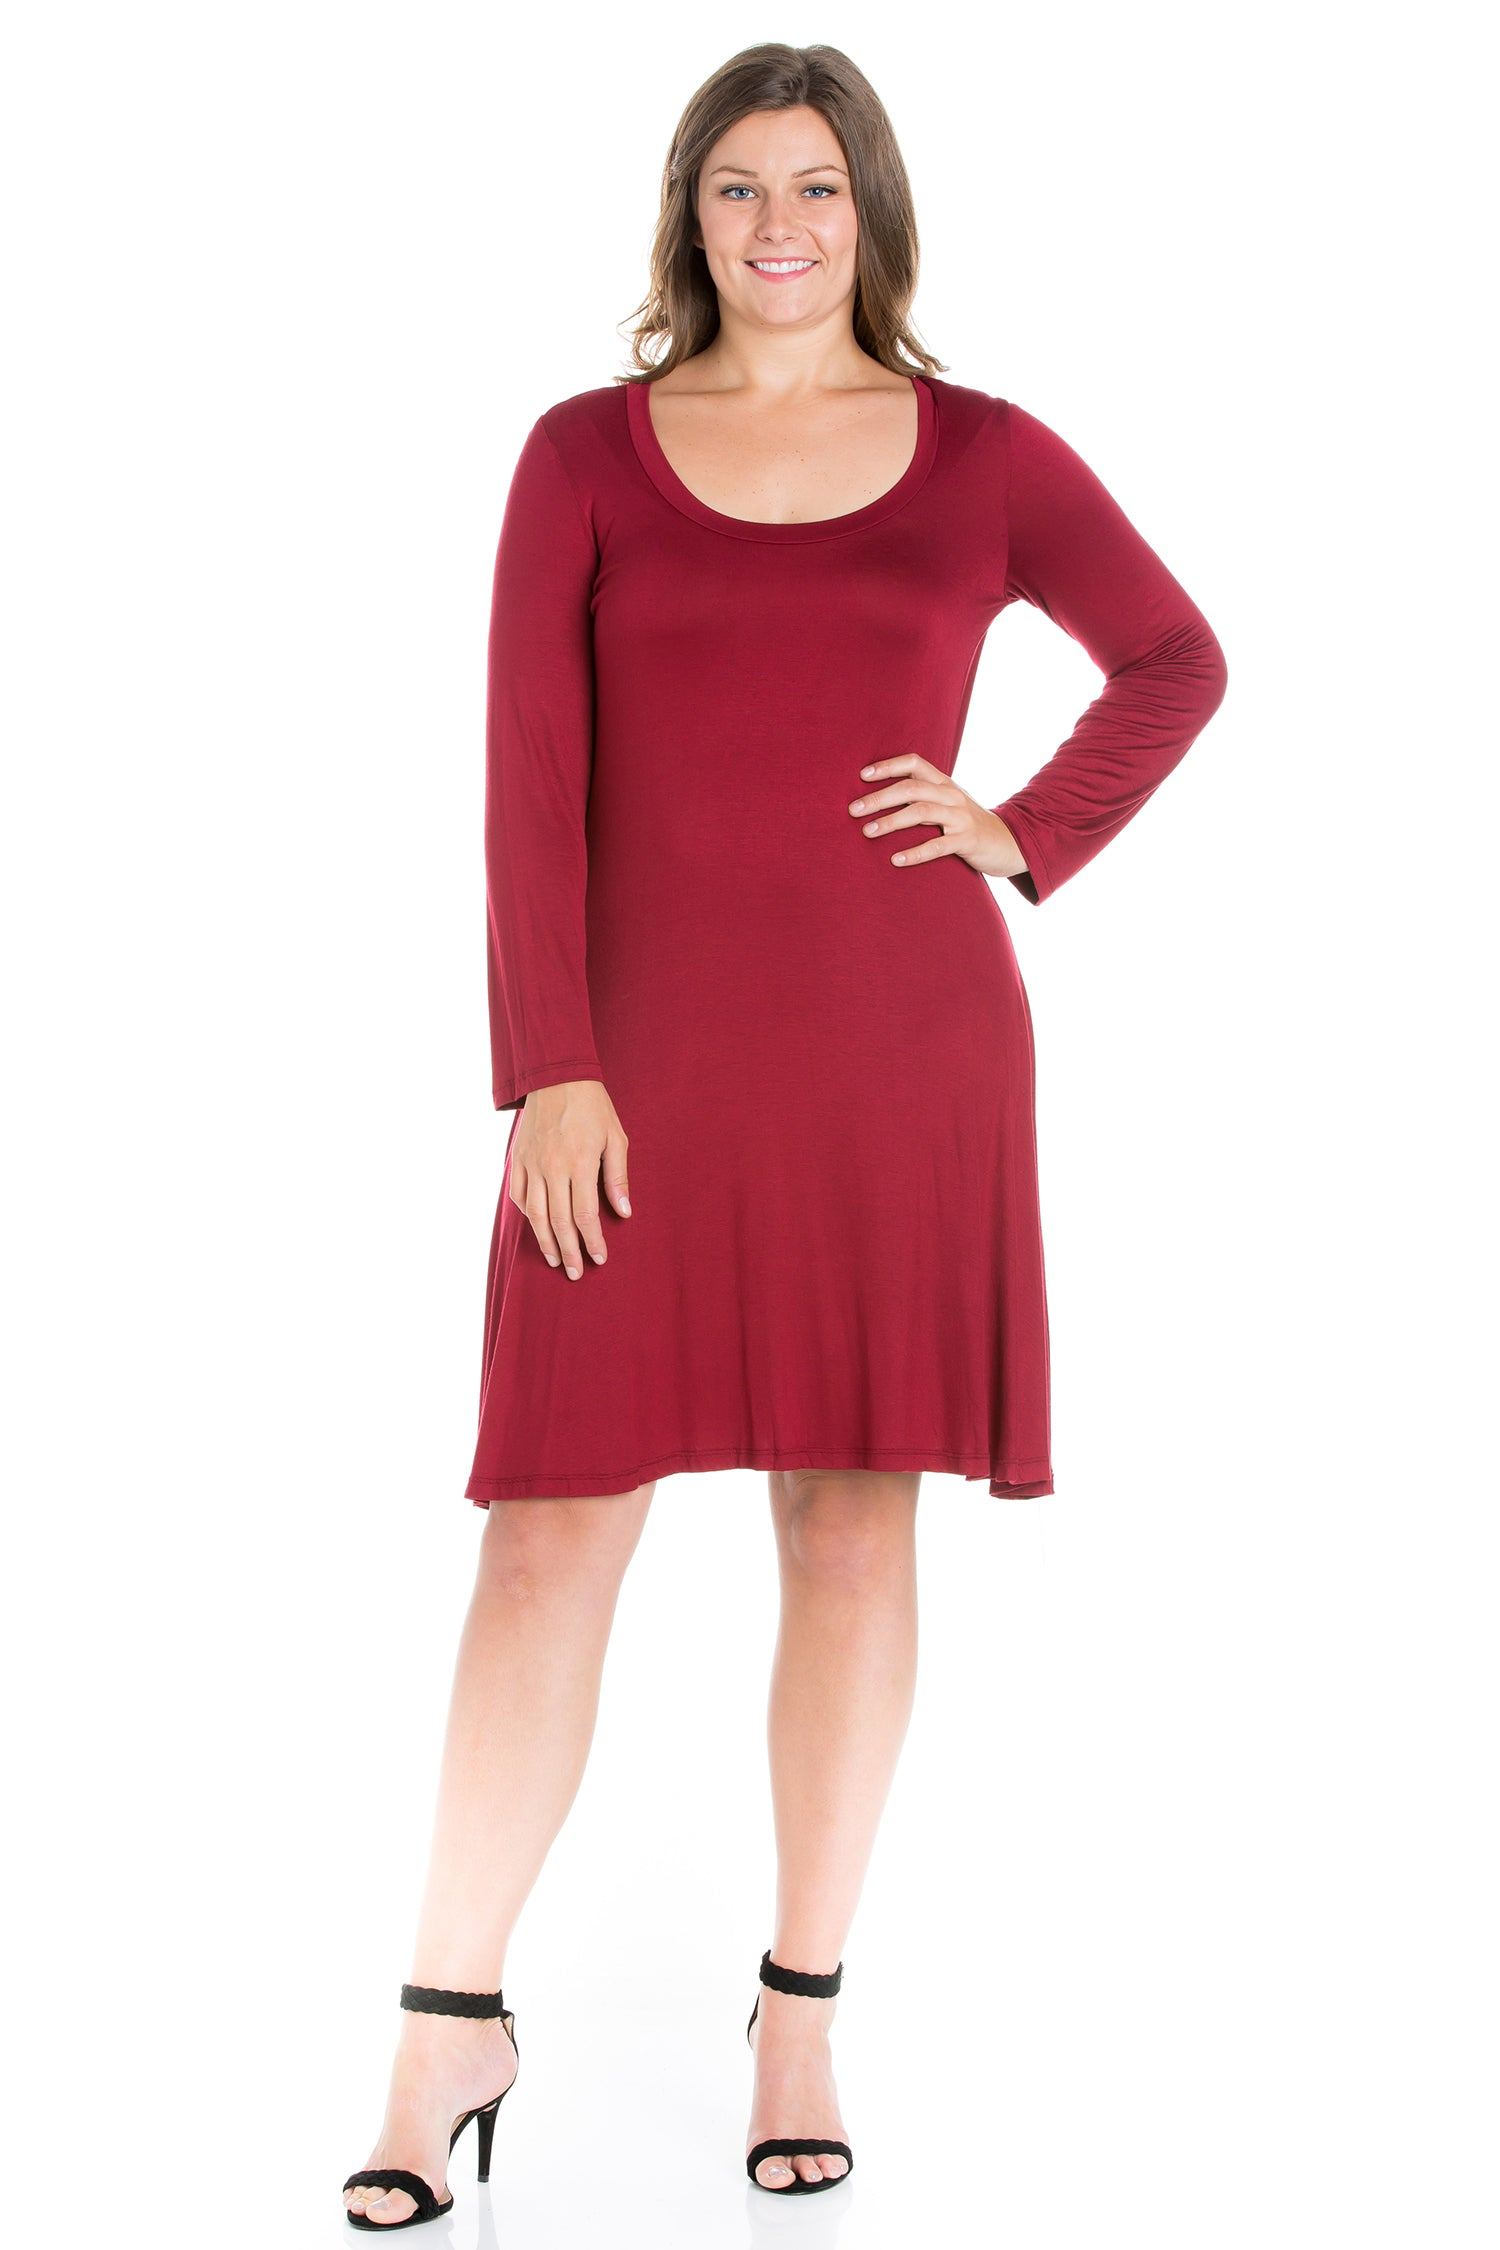 24seven Comfort Apparel Classic Long Sleeve Plus Size Flared Mini Dress-DRESSES-24Seven Comfort Apparel-WINE-1X-24/7 Comfort Apparel